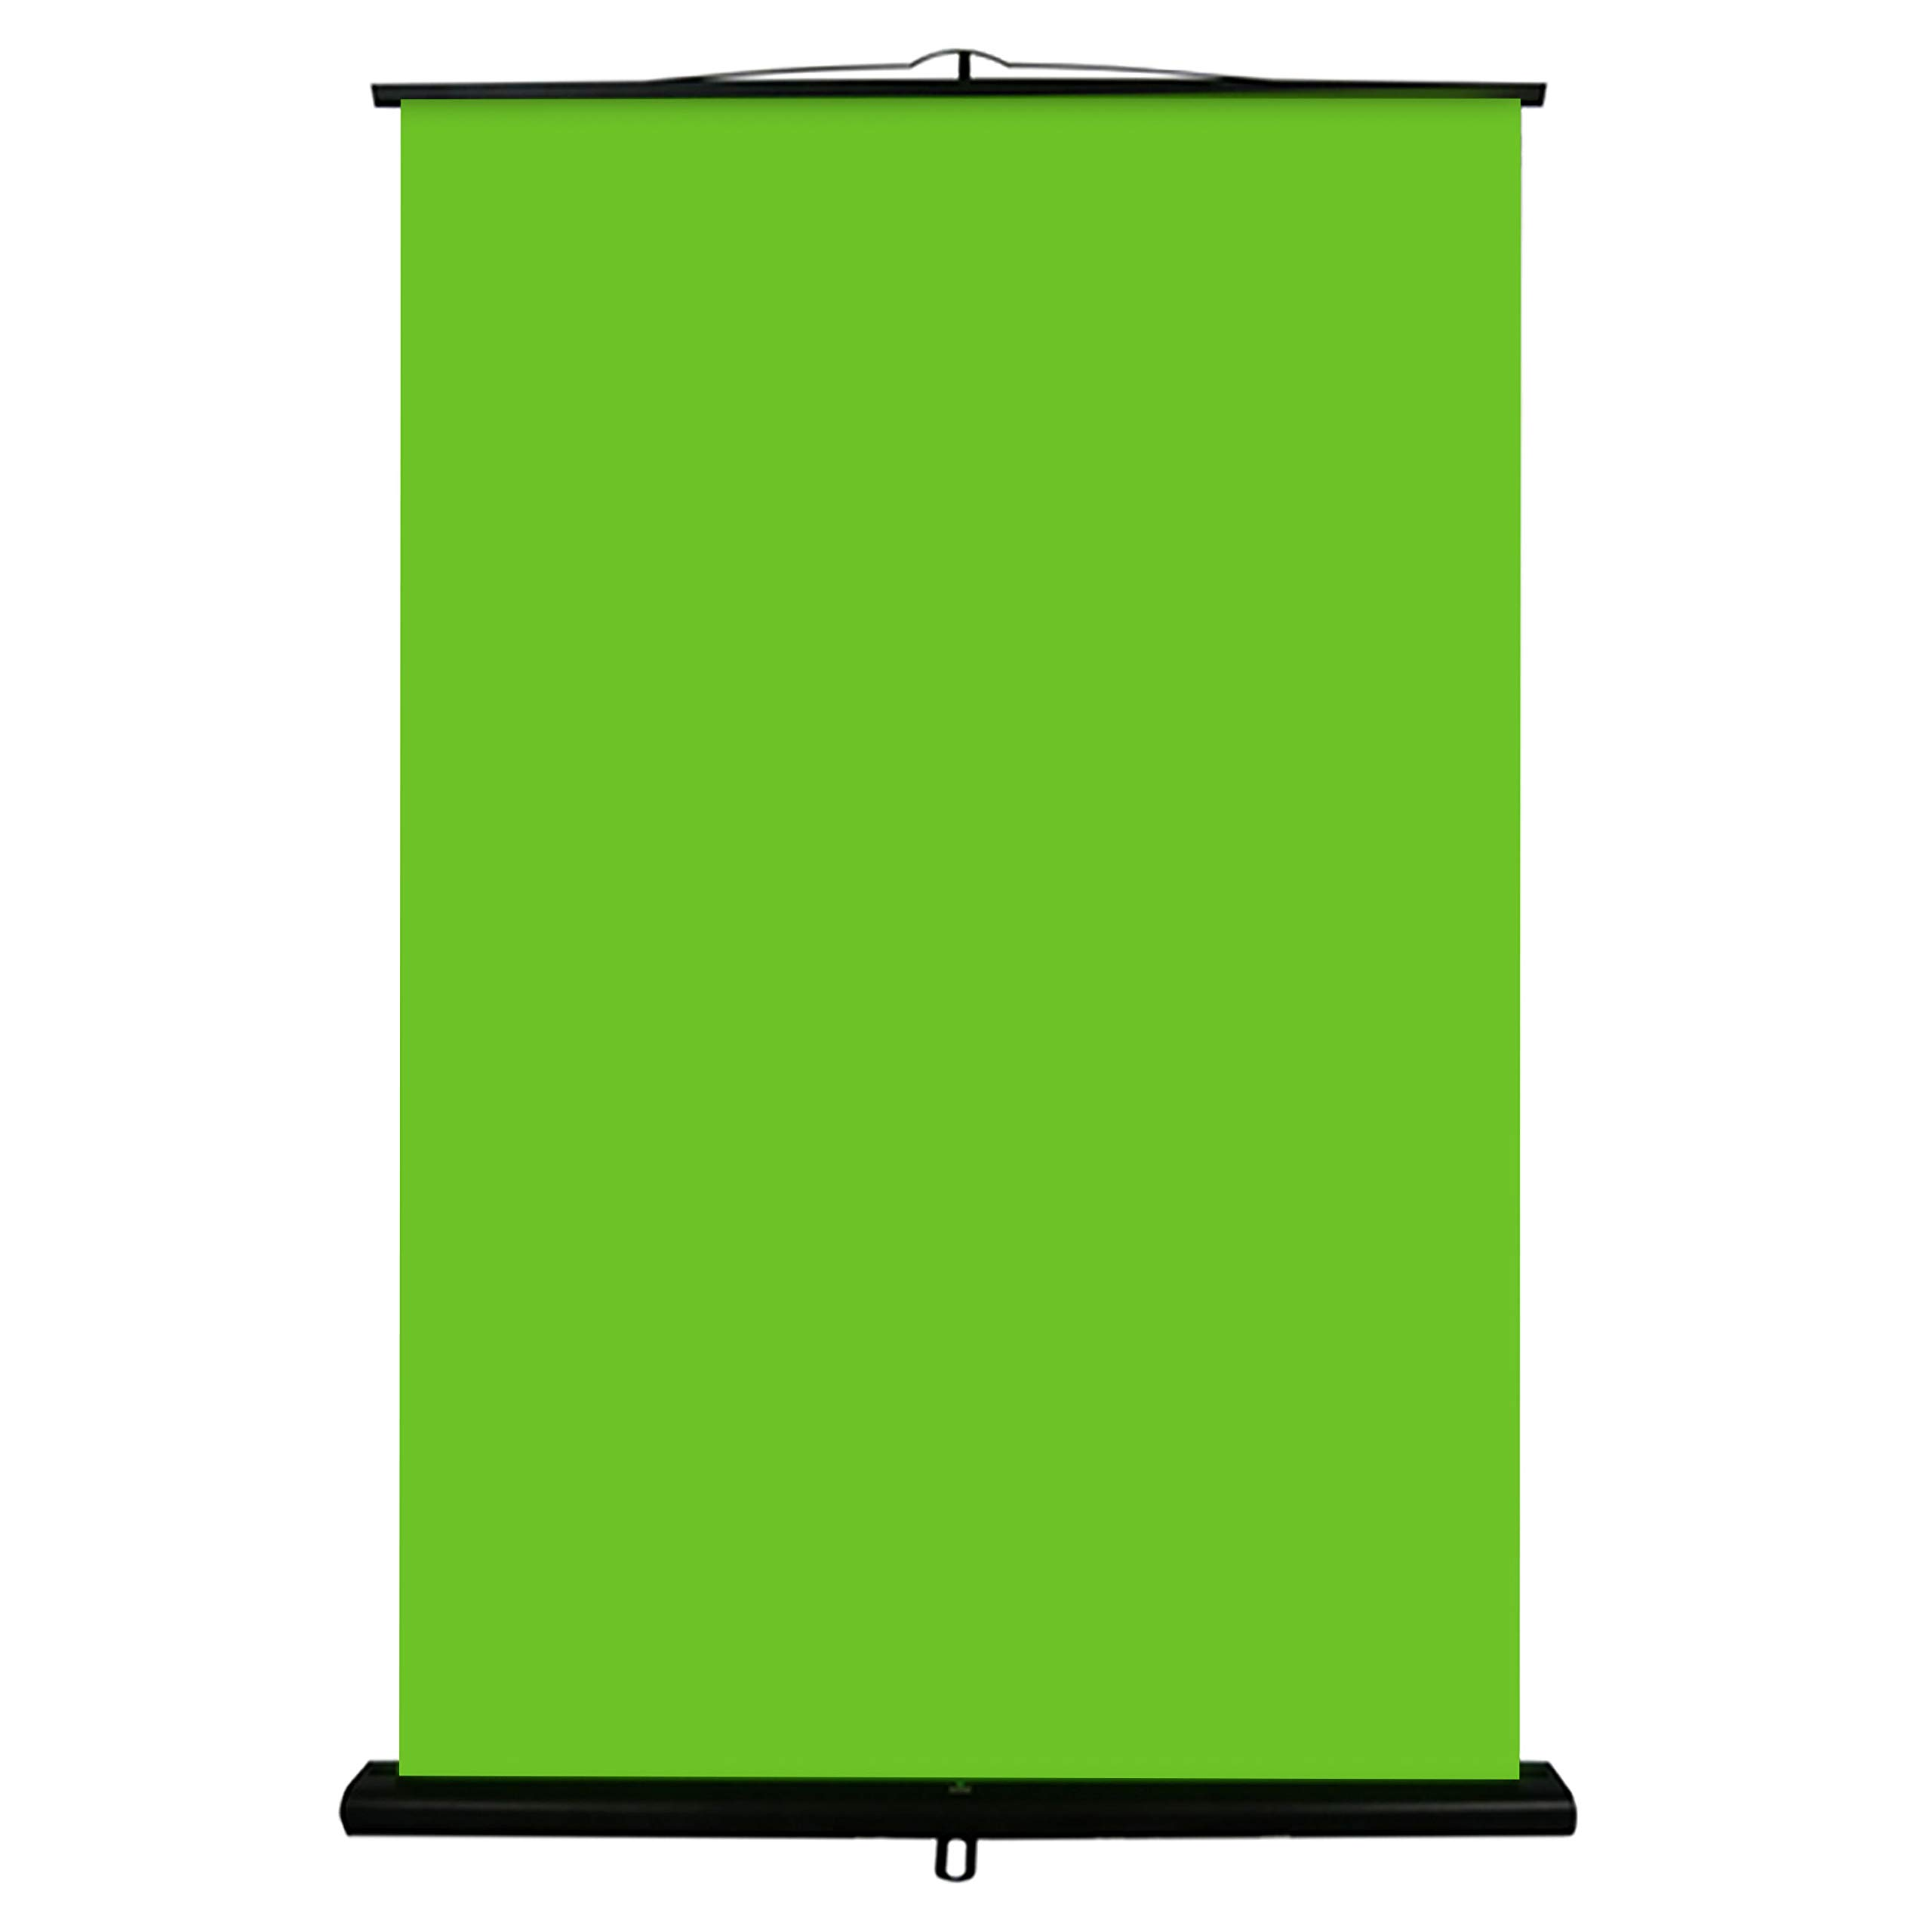 Valera Creator 95: Collapsible Green Screen for Streaming | 75'' x 58'' Screen Area | 11 lbs - Lightest in-Class | 10 Second Setup | Chromakey Wrinkle Resistant Screen | Works in Low Light Conditions